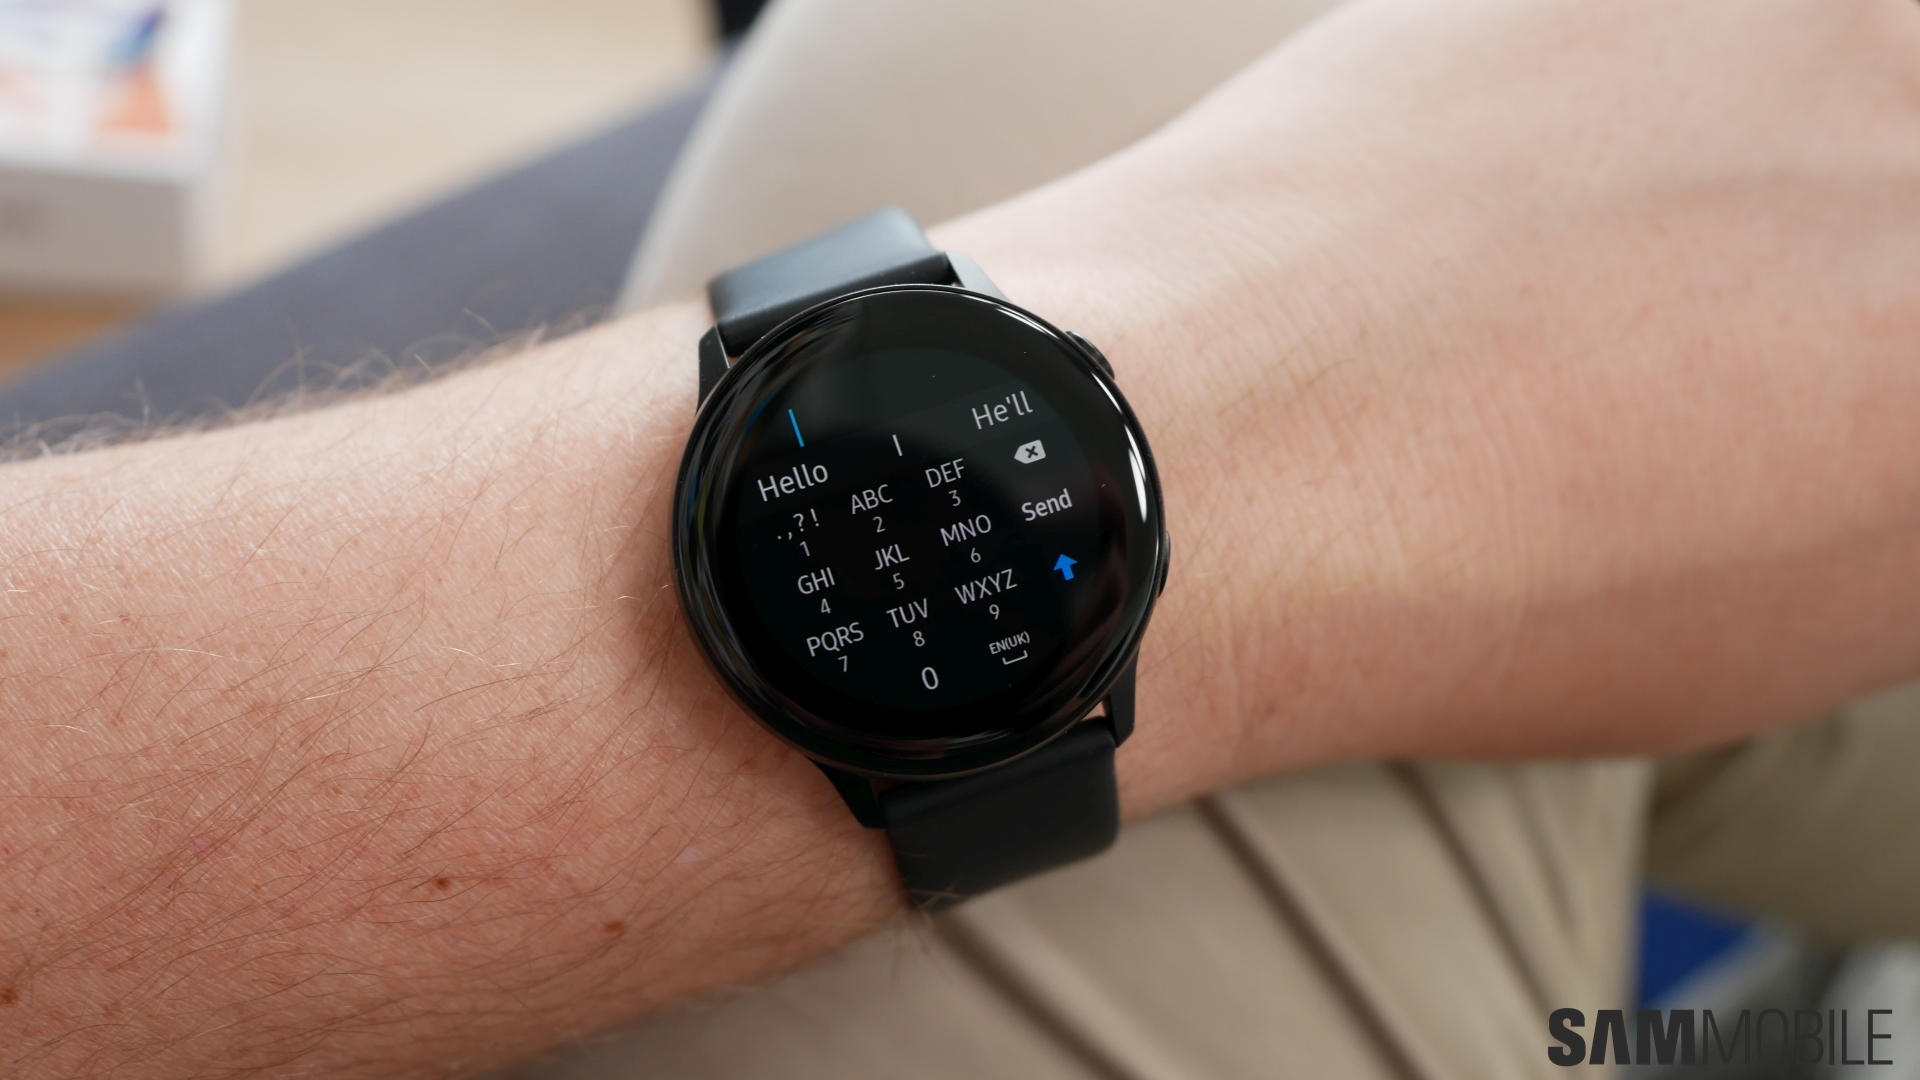 Samsung Galaxy Watch Active review: Big things come in small